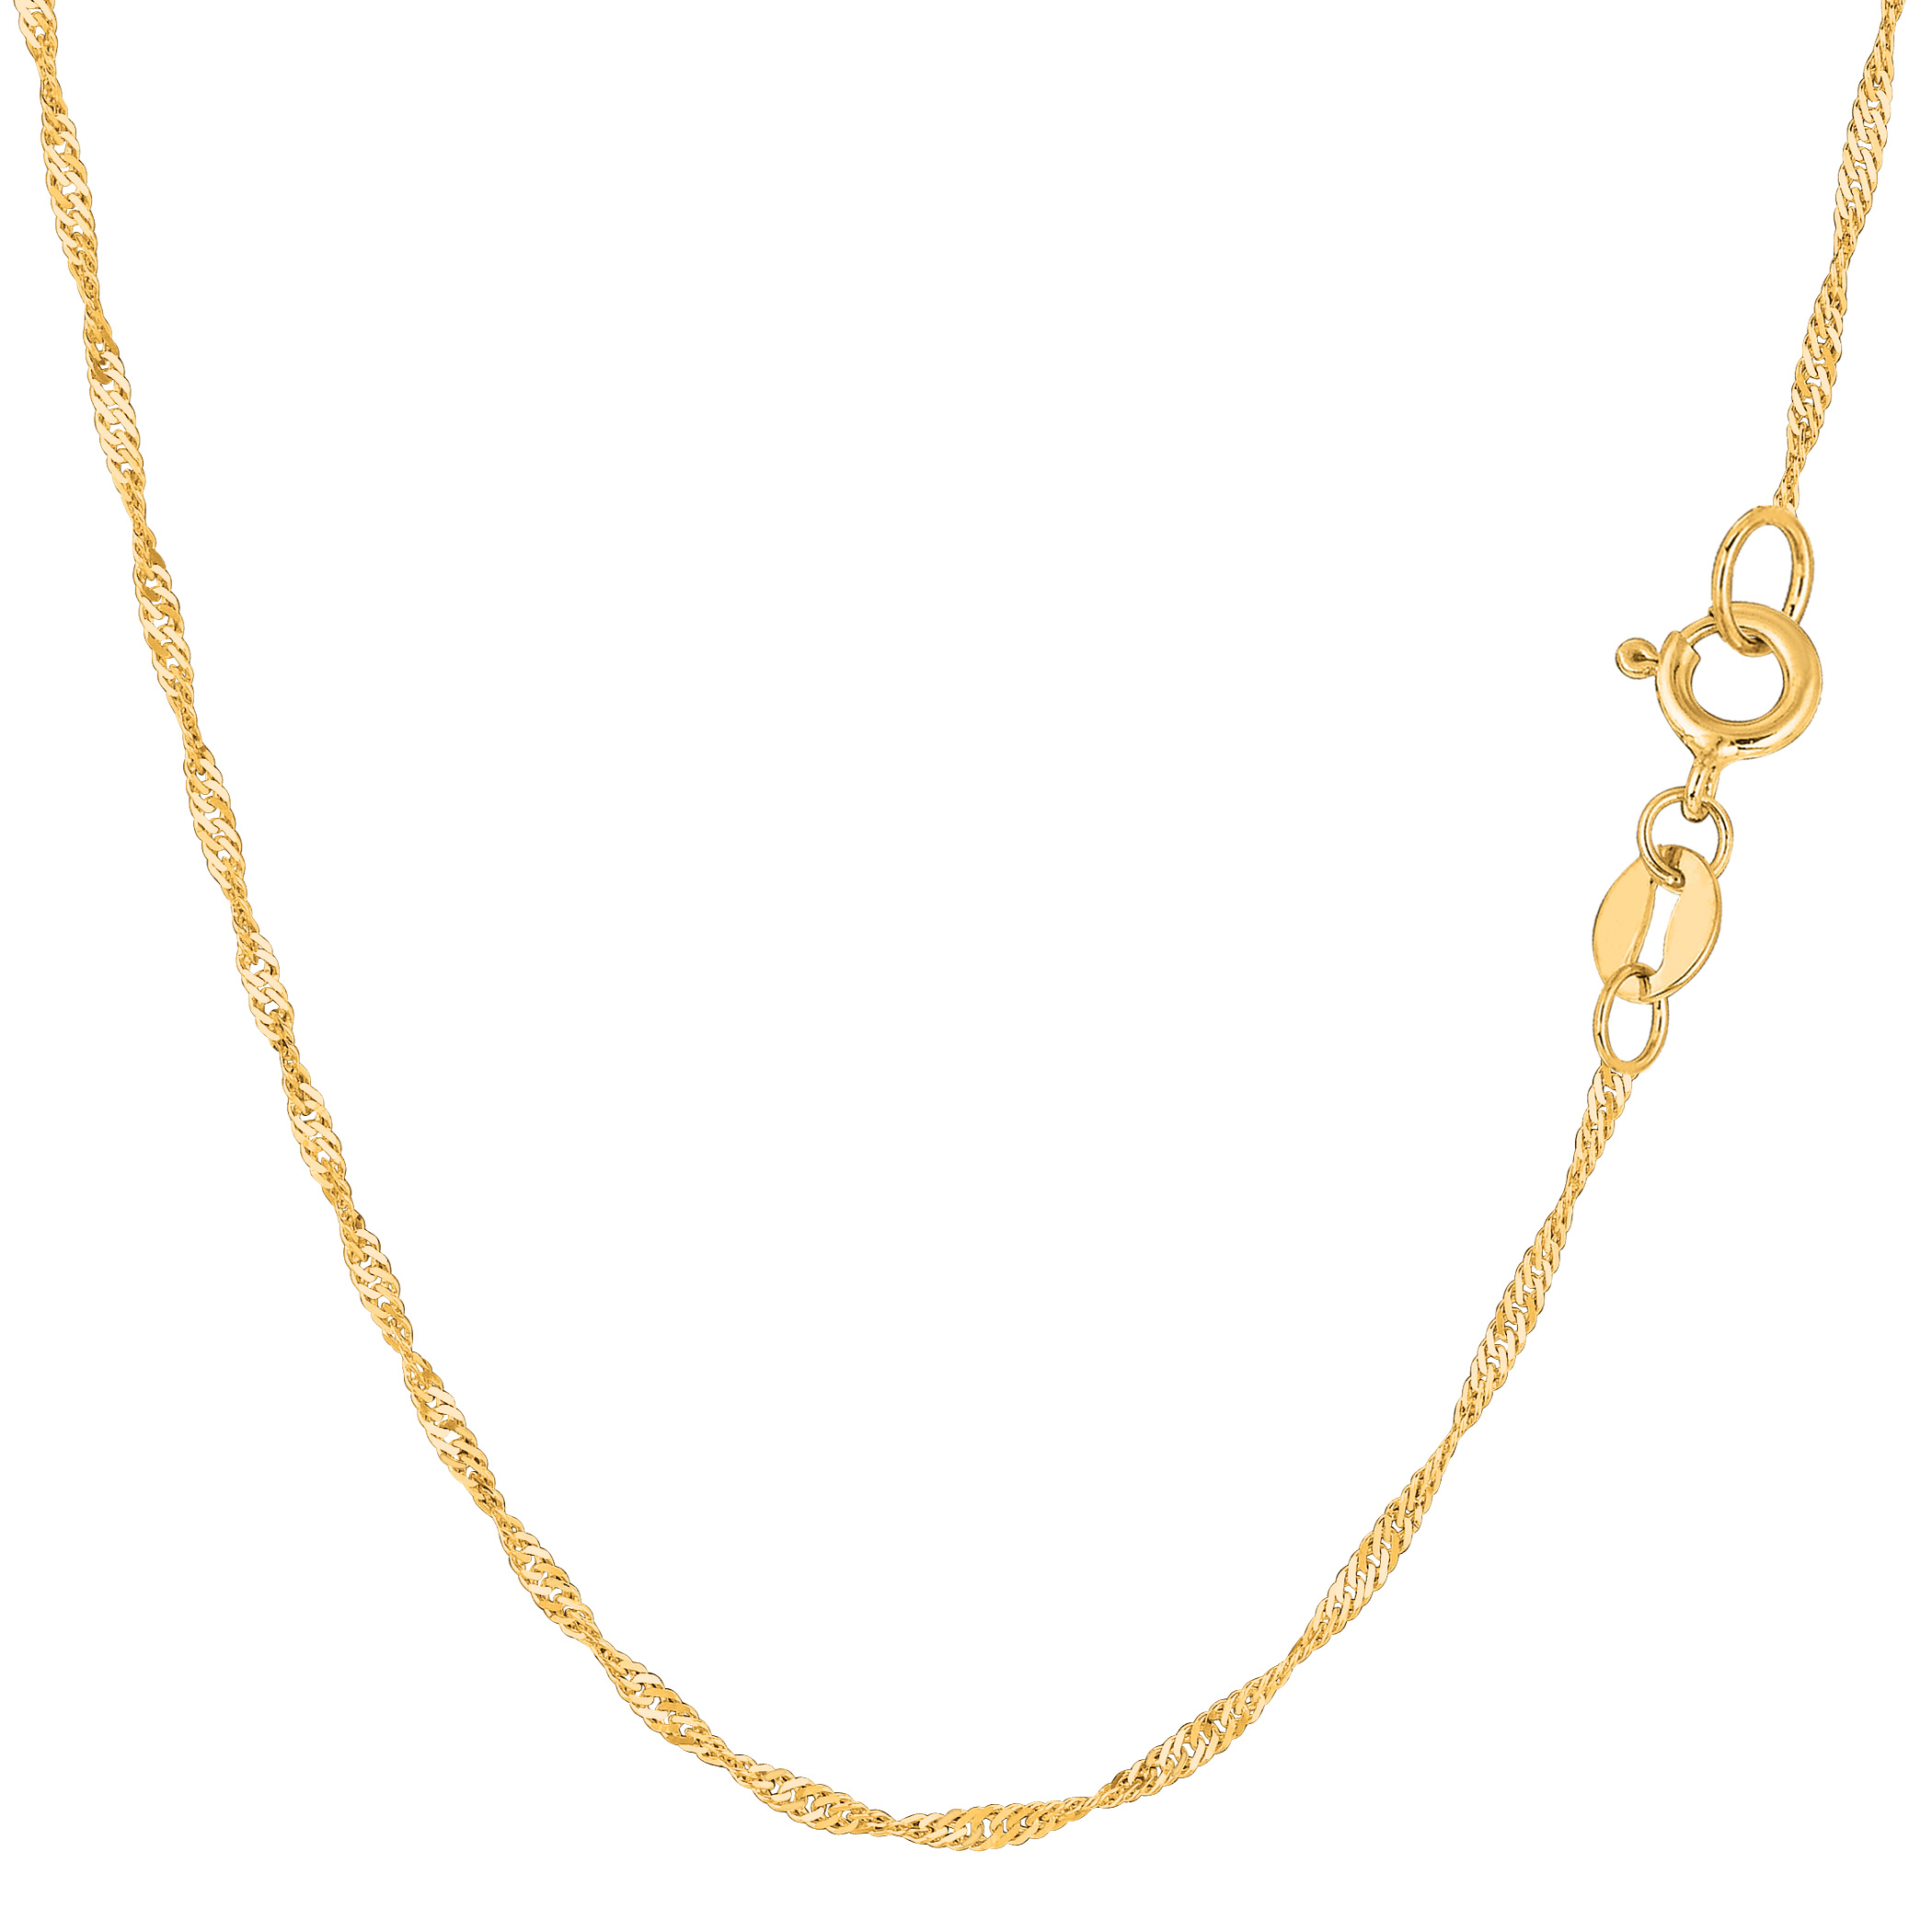 14k Yellow Gold Singapore Chain Bracelet, 1.5mm, 10″